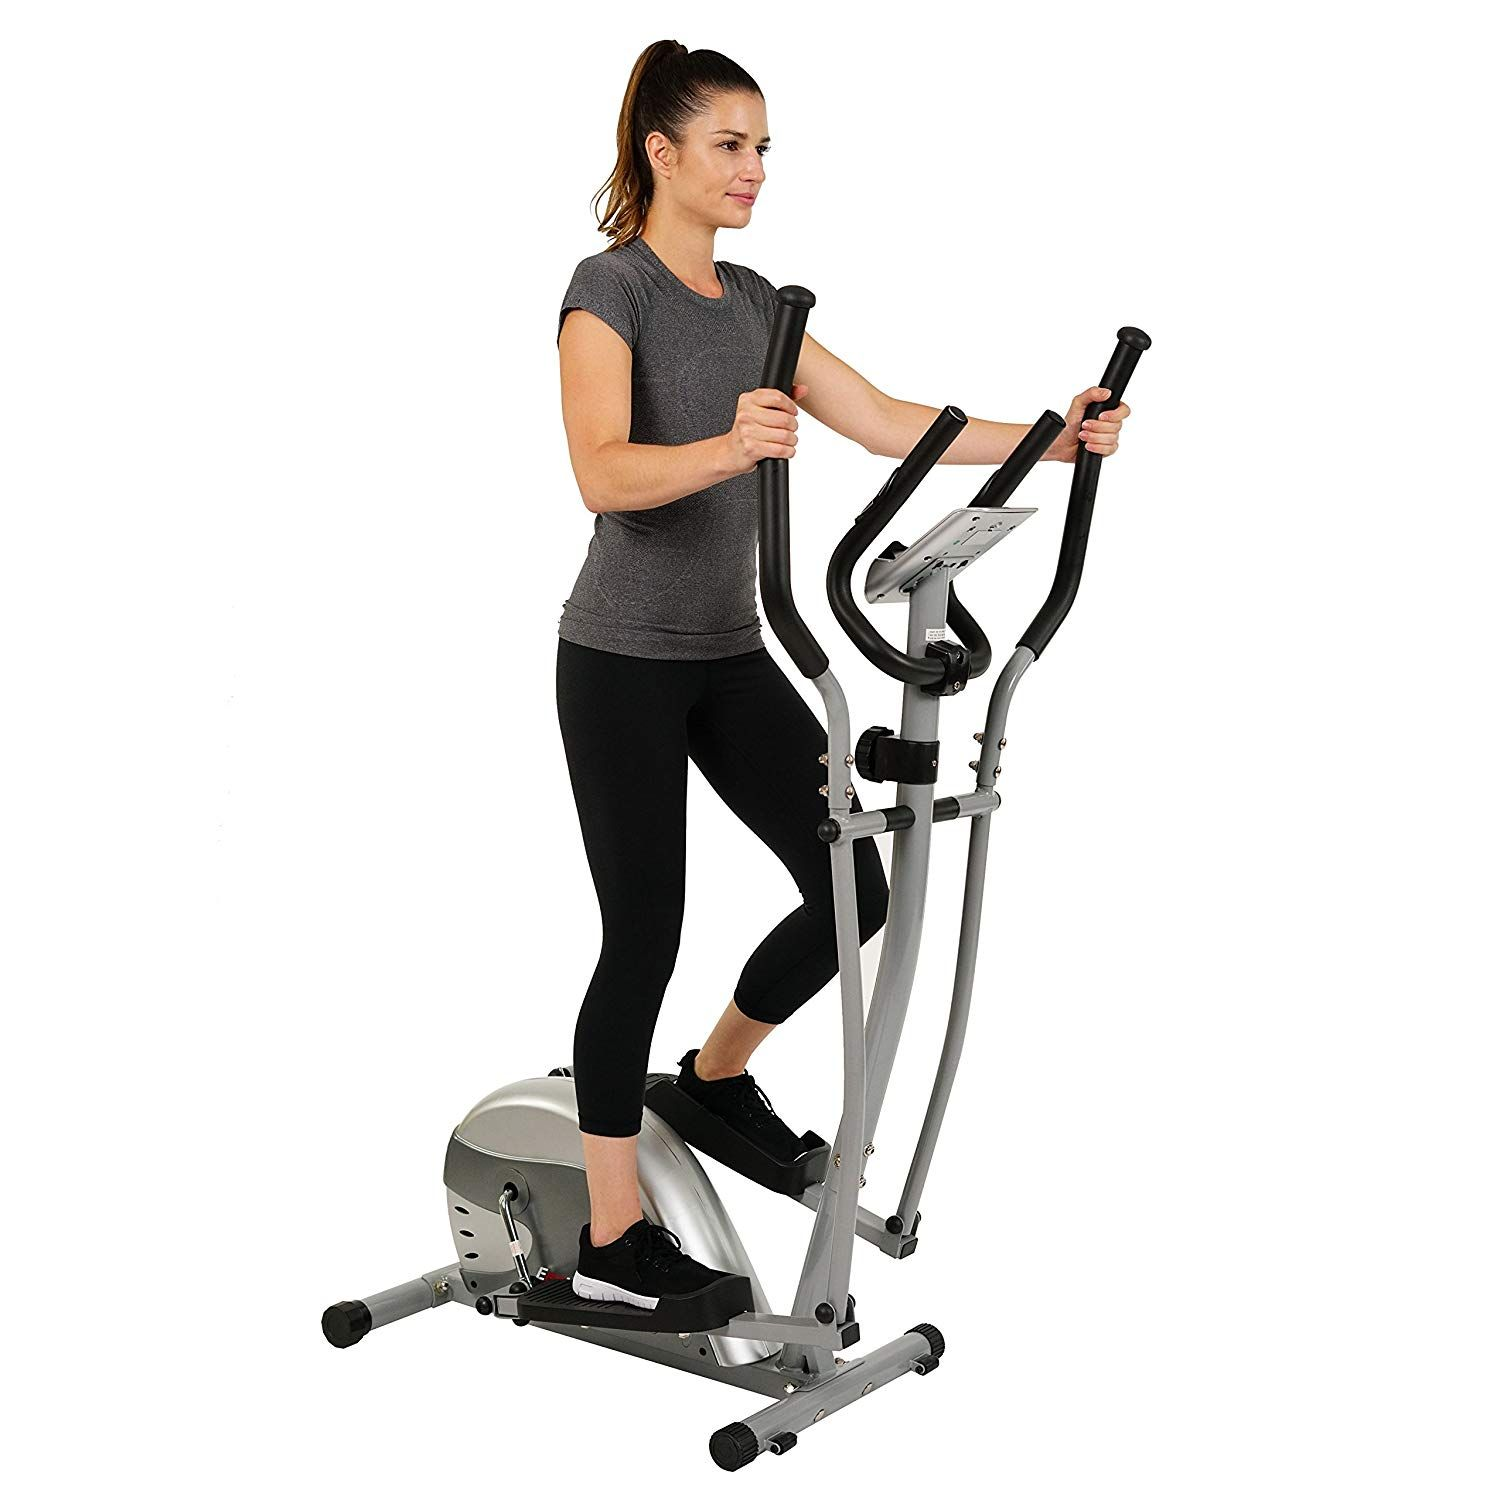 5 Best Elliptical Under 500 Usd For 2019 No Equipment Workout Elliptical Machine Elliptical